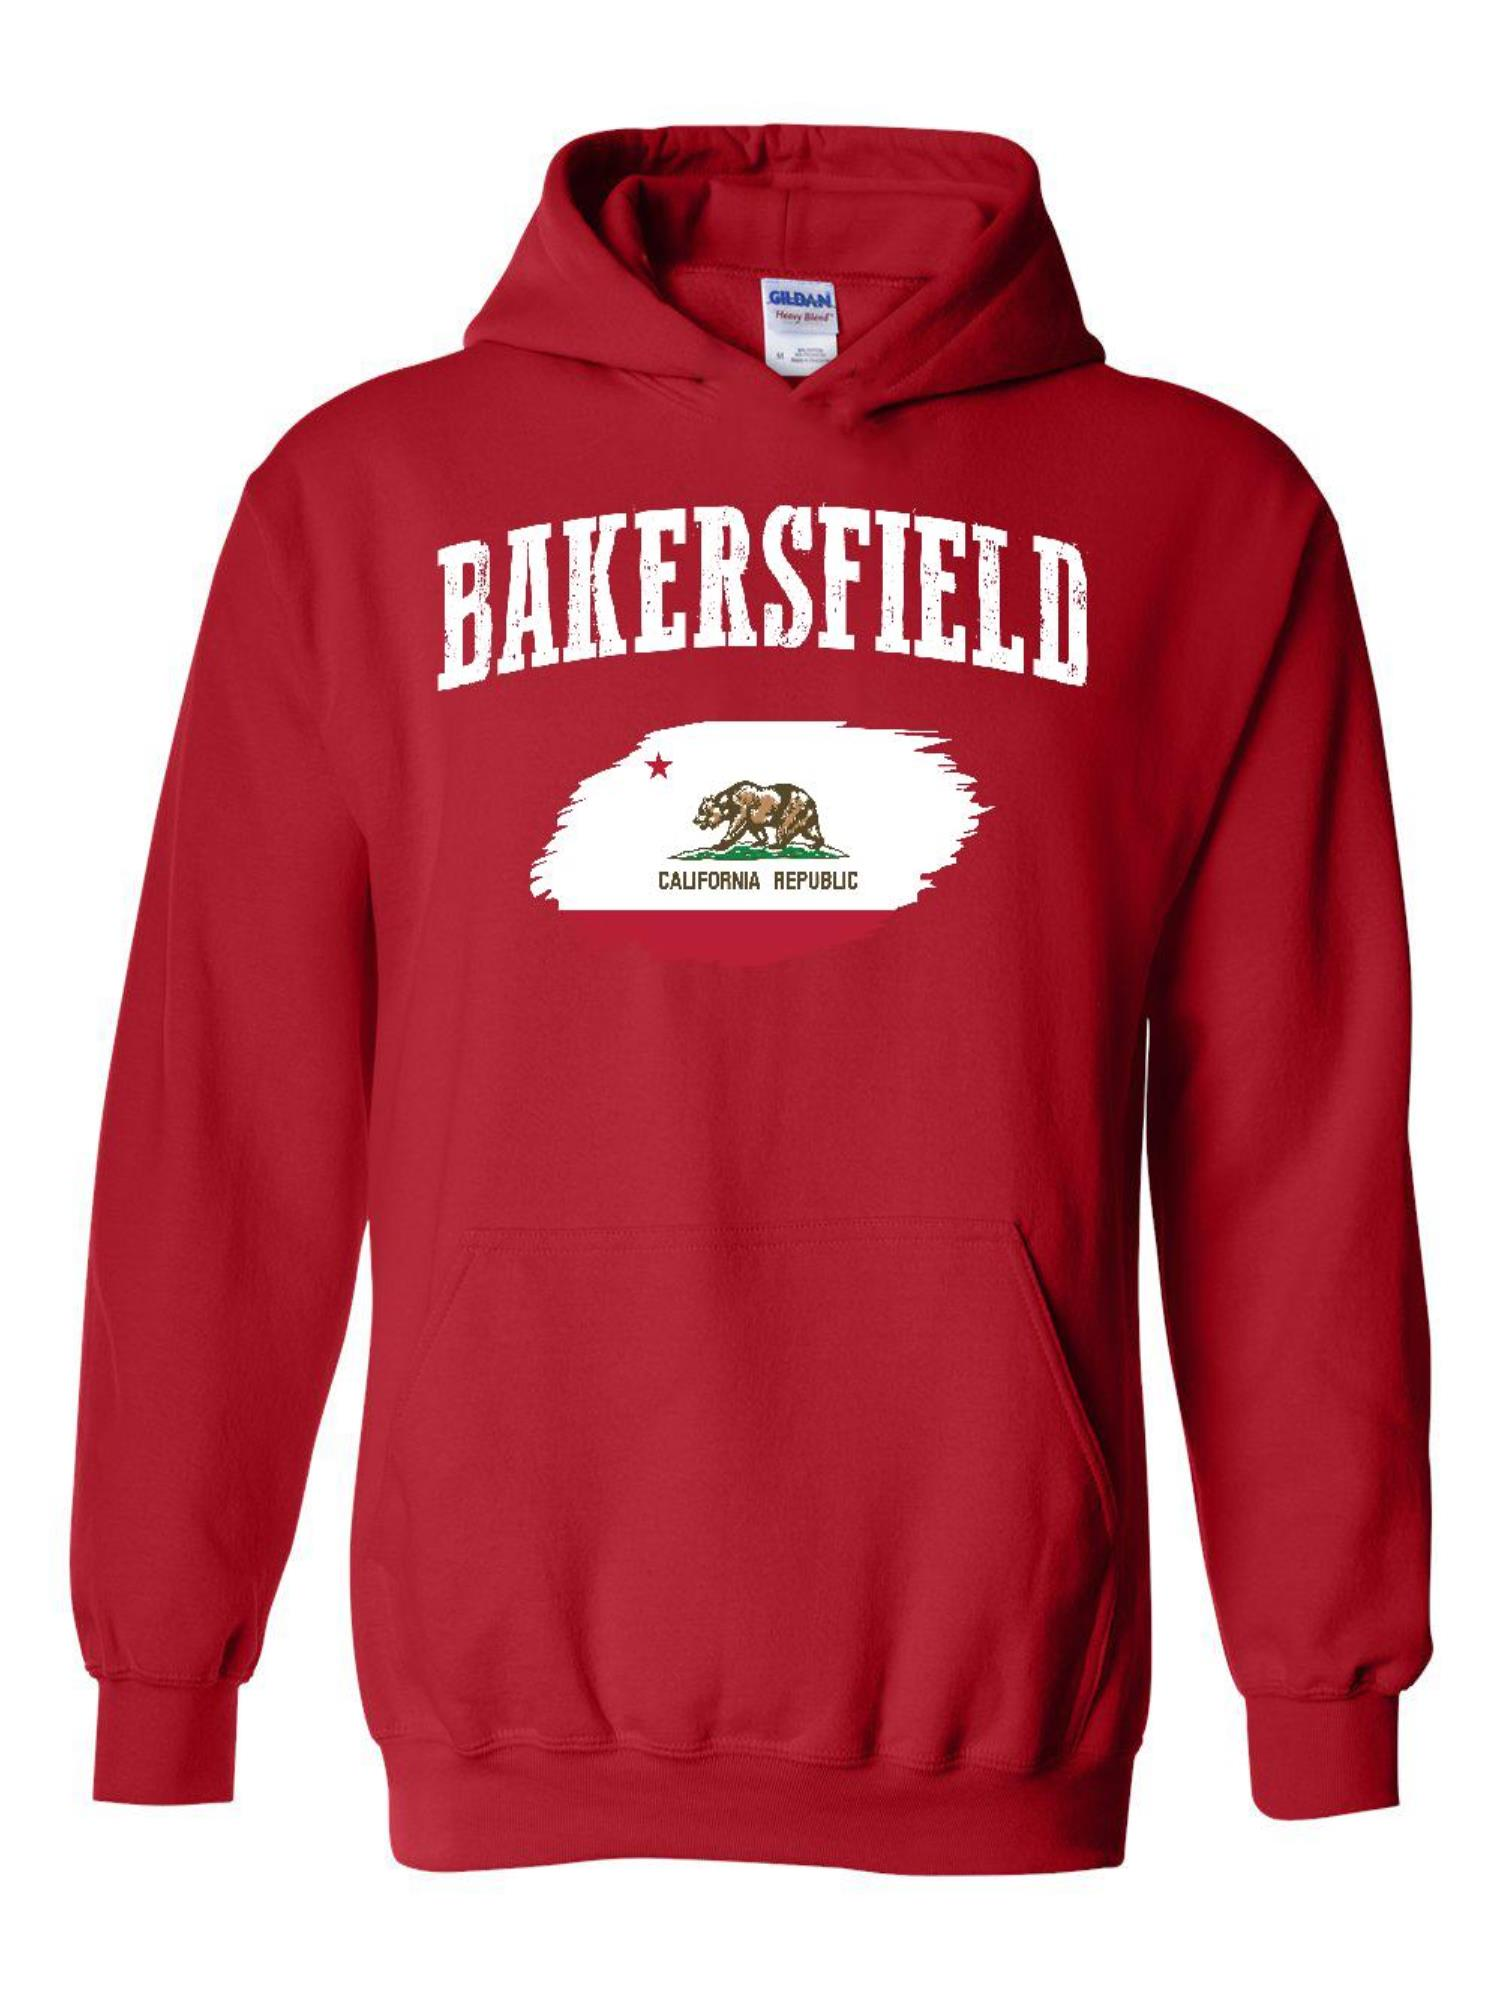 Bakersfield California Unisex Hoodie Hooded Sweatshirt ...